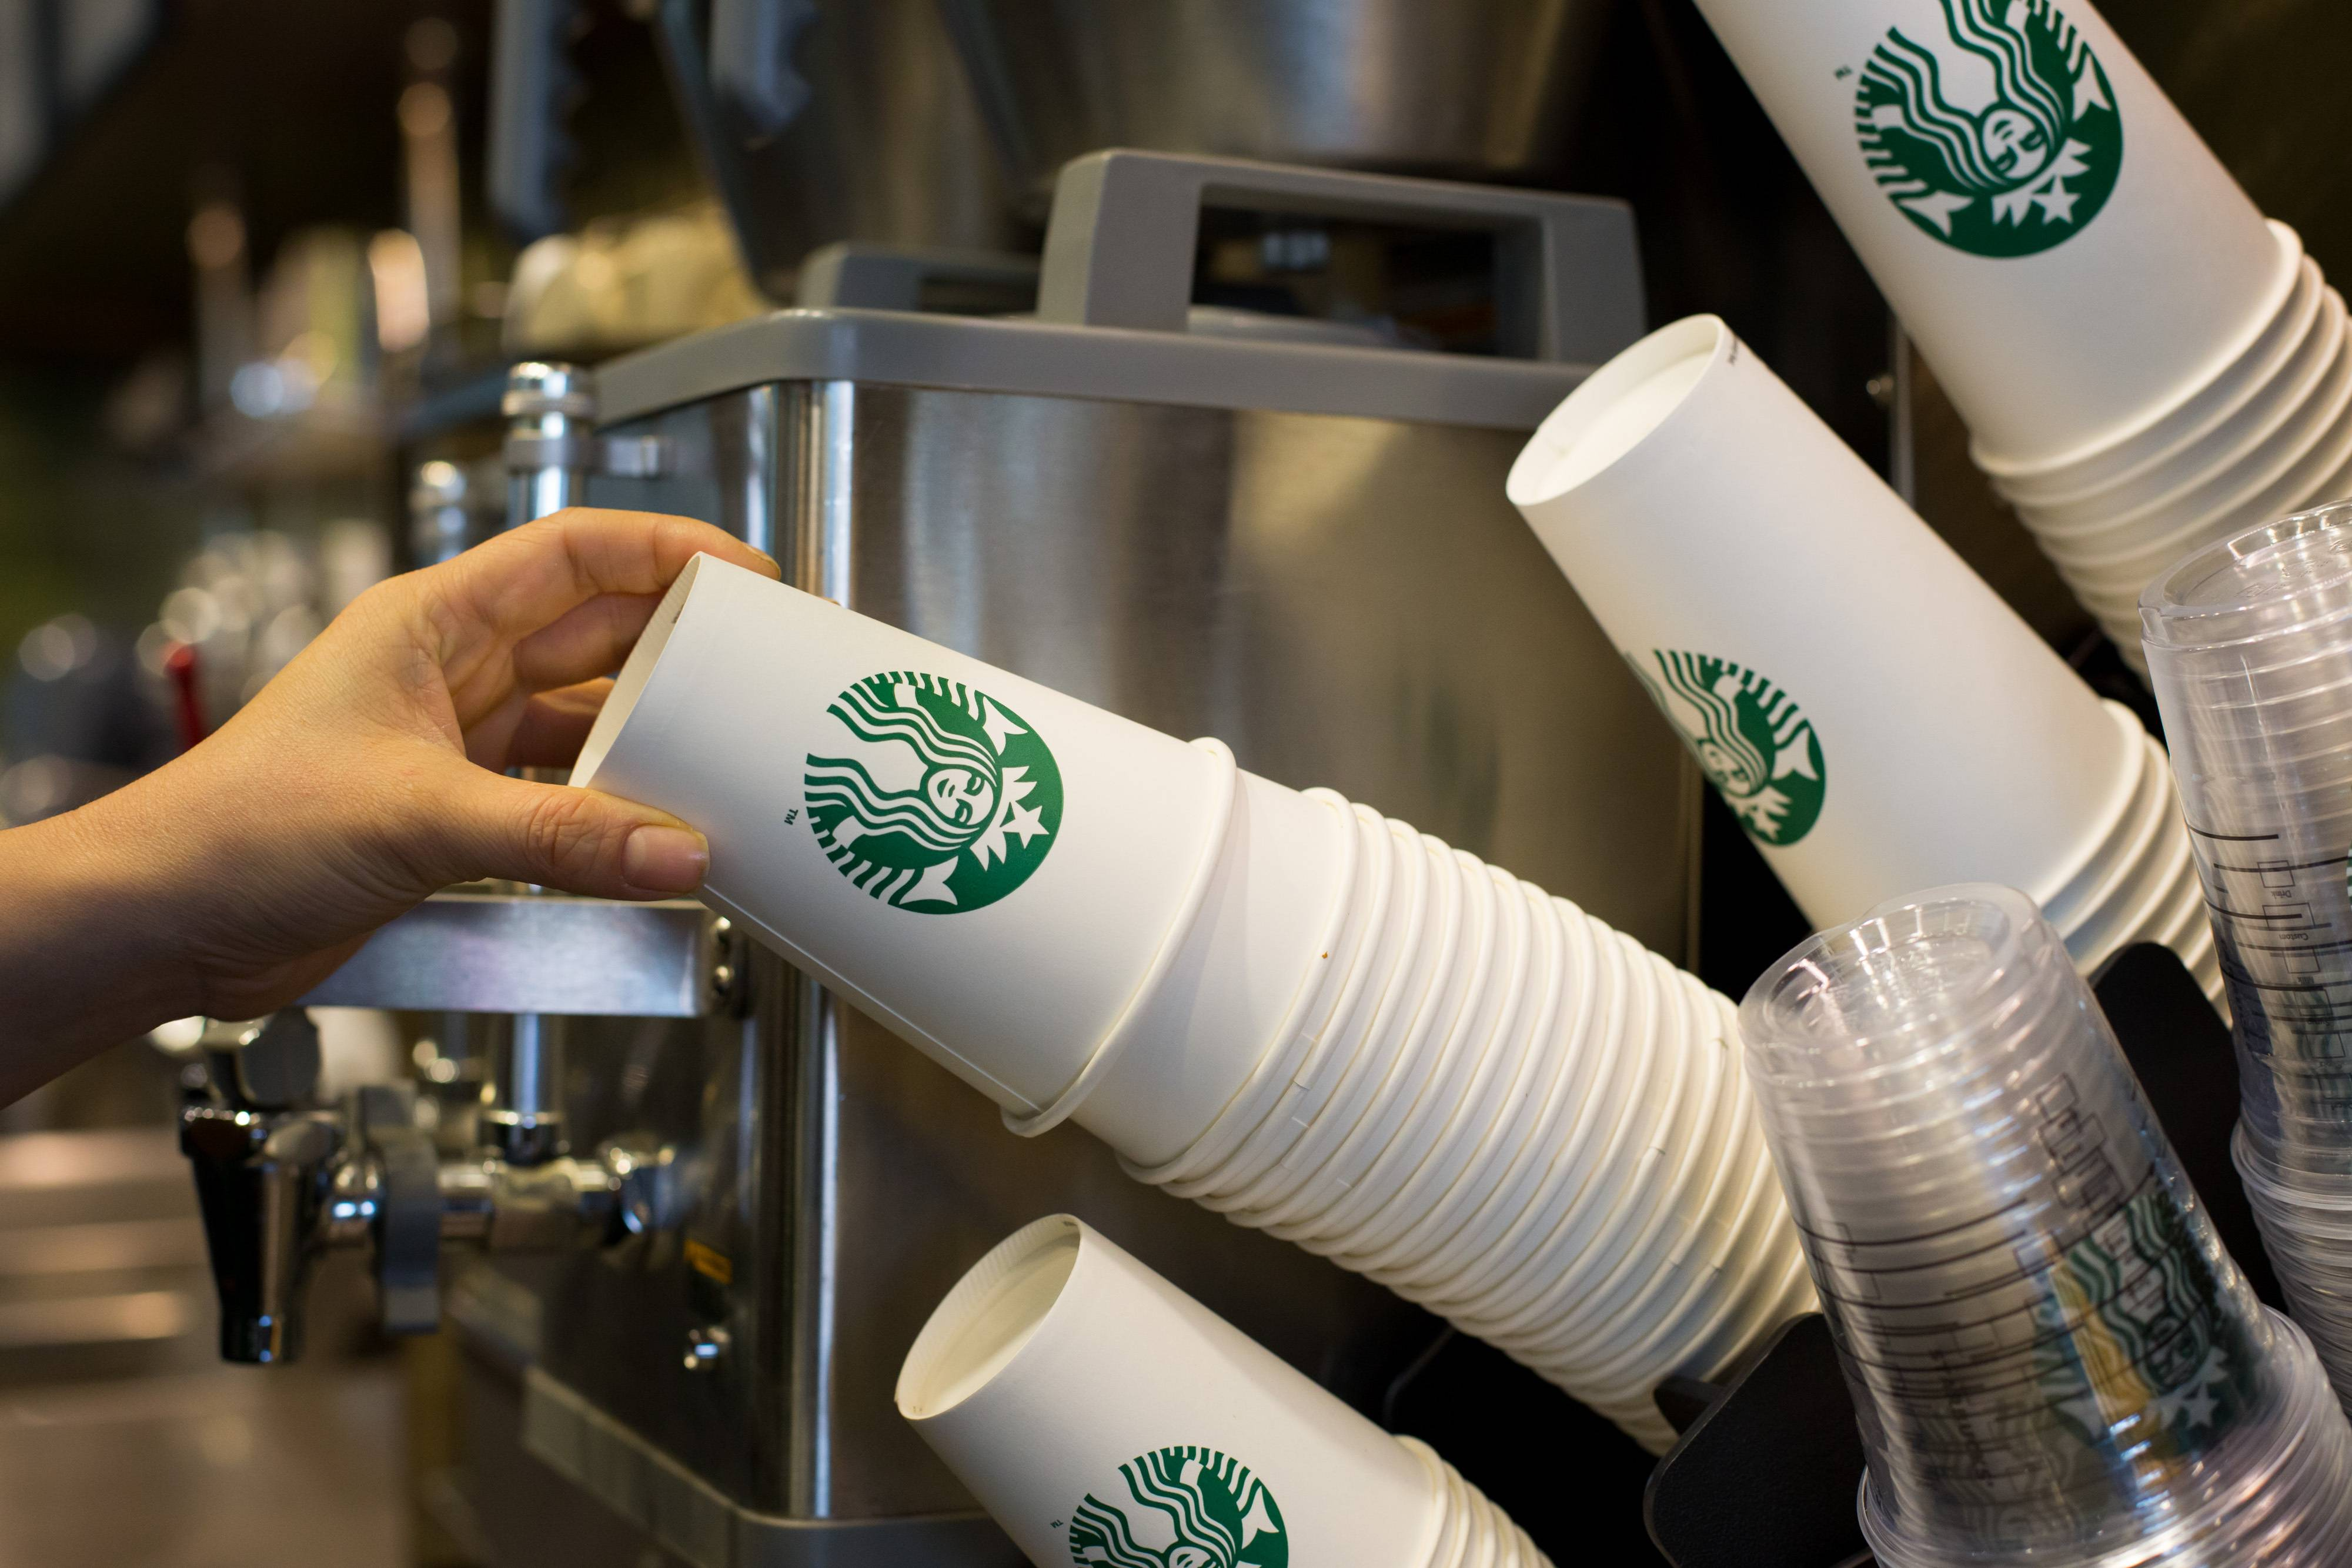 Starbucks will soon permit customers to leave a tip with its mobile payment app, which raises the question — how often do people tip their baristas?